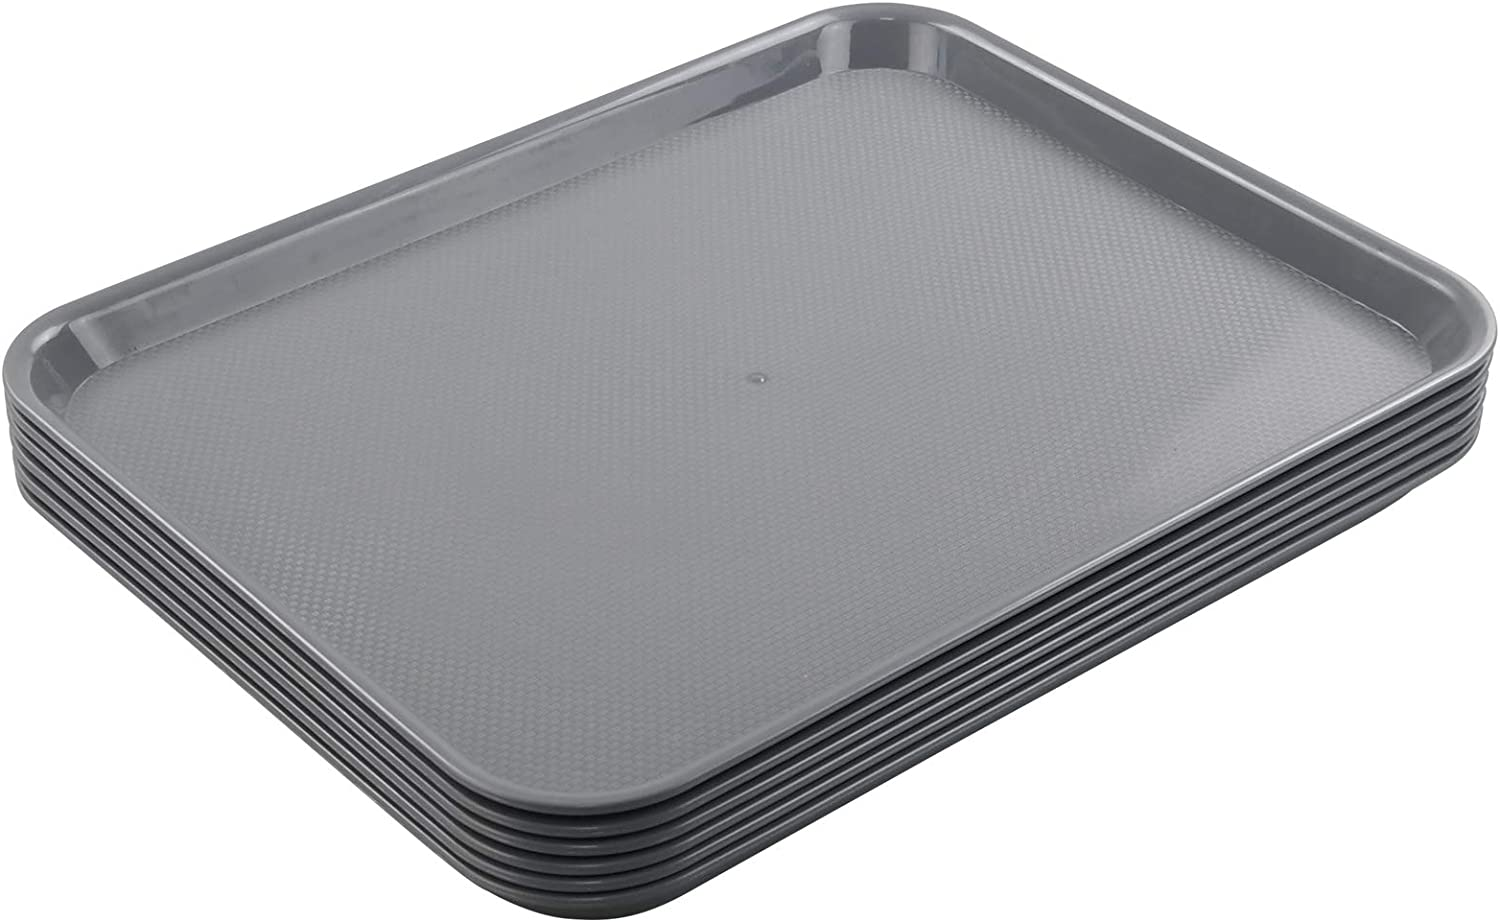 Easymanie Plastic Serving Trays, Grey Food Service Trays, 6 Packs